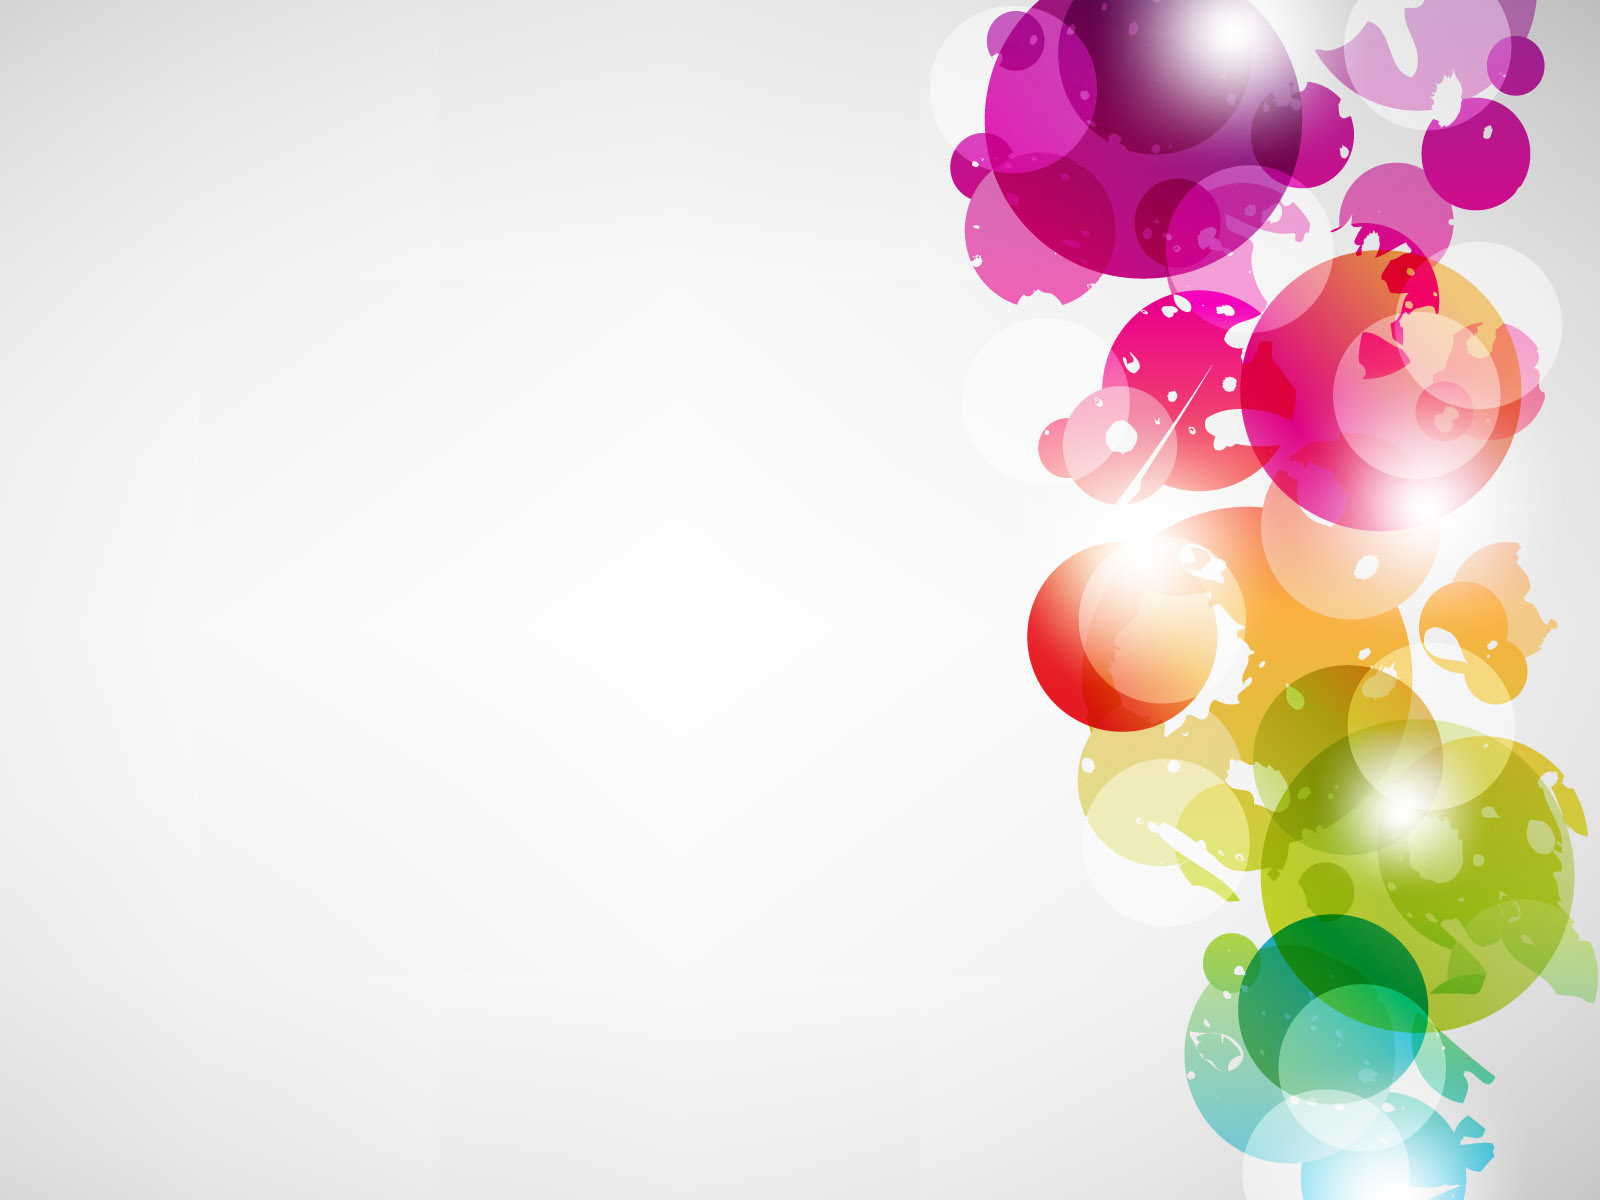 Abstract Multicolour Backgrounds